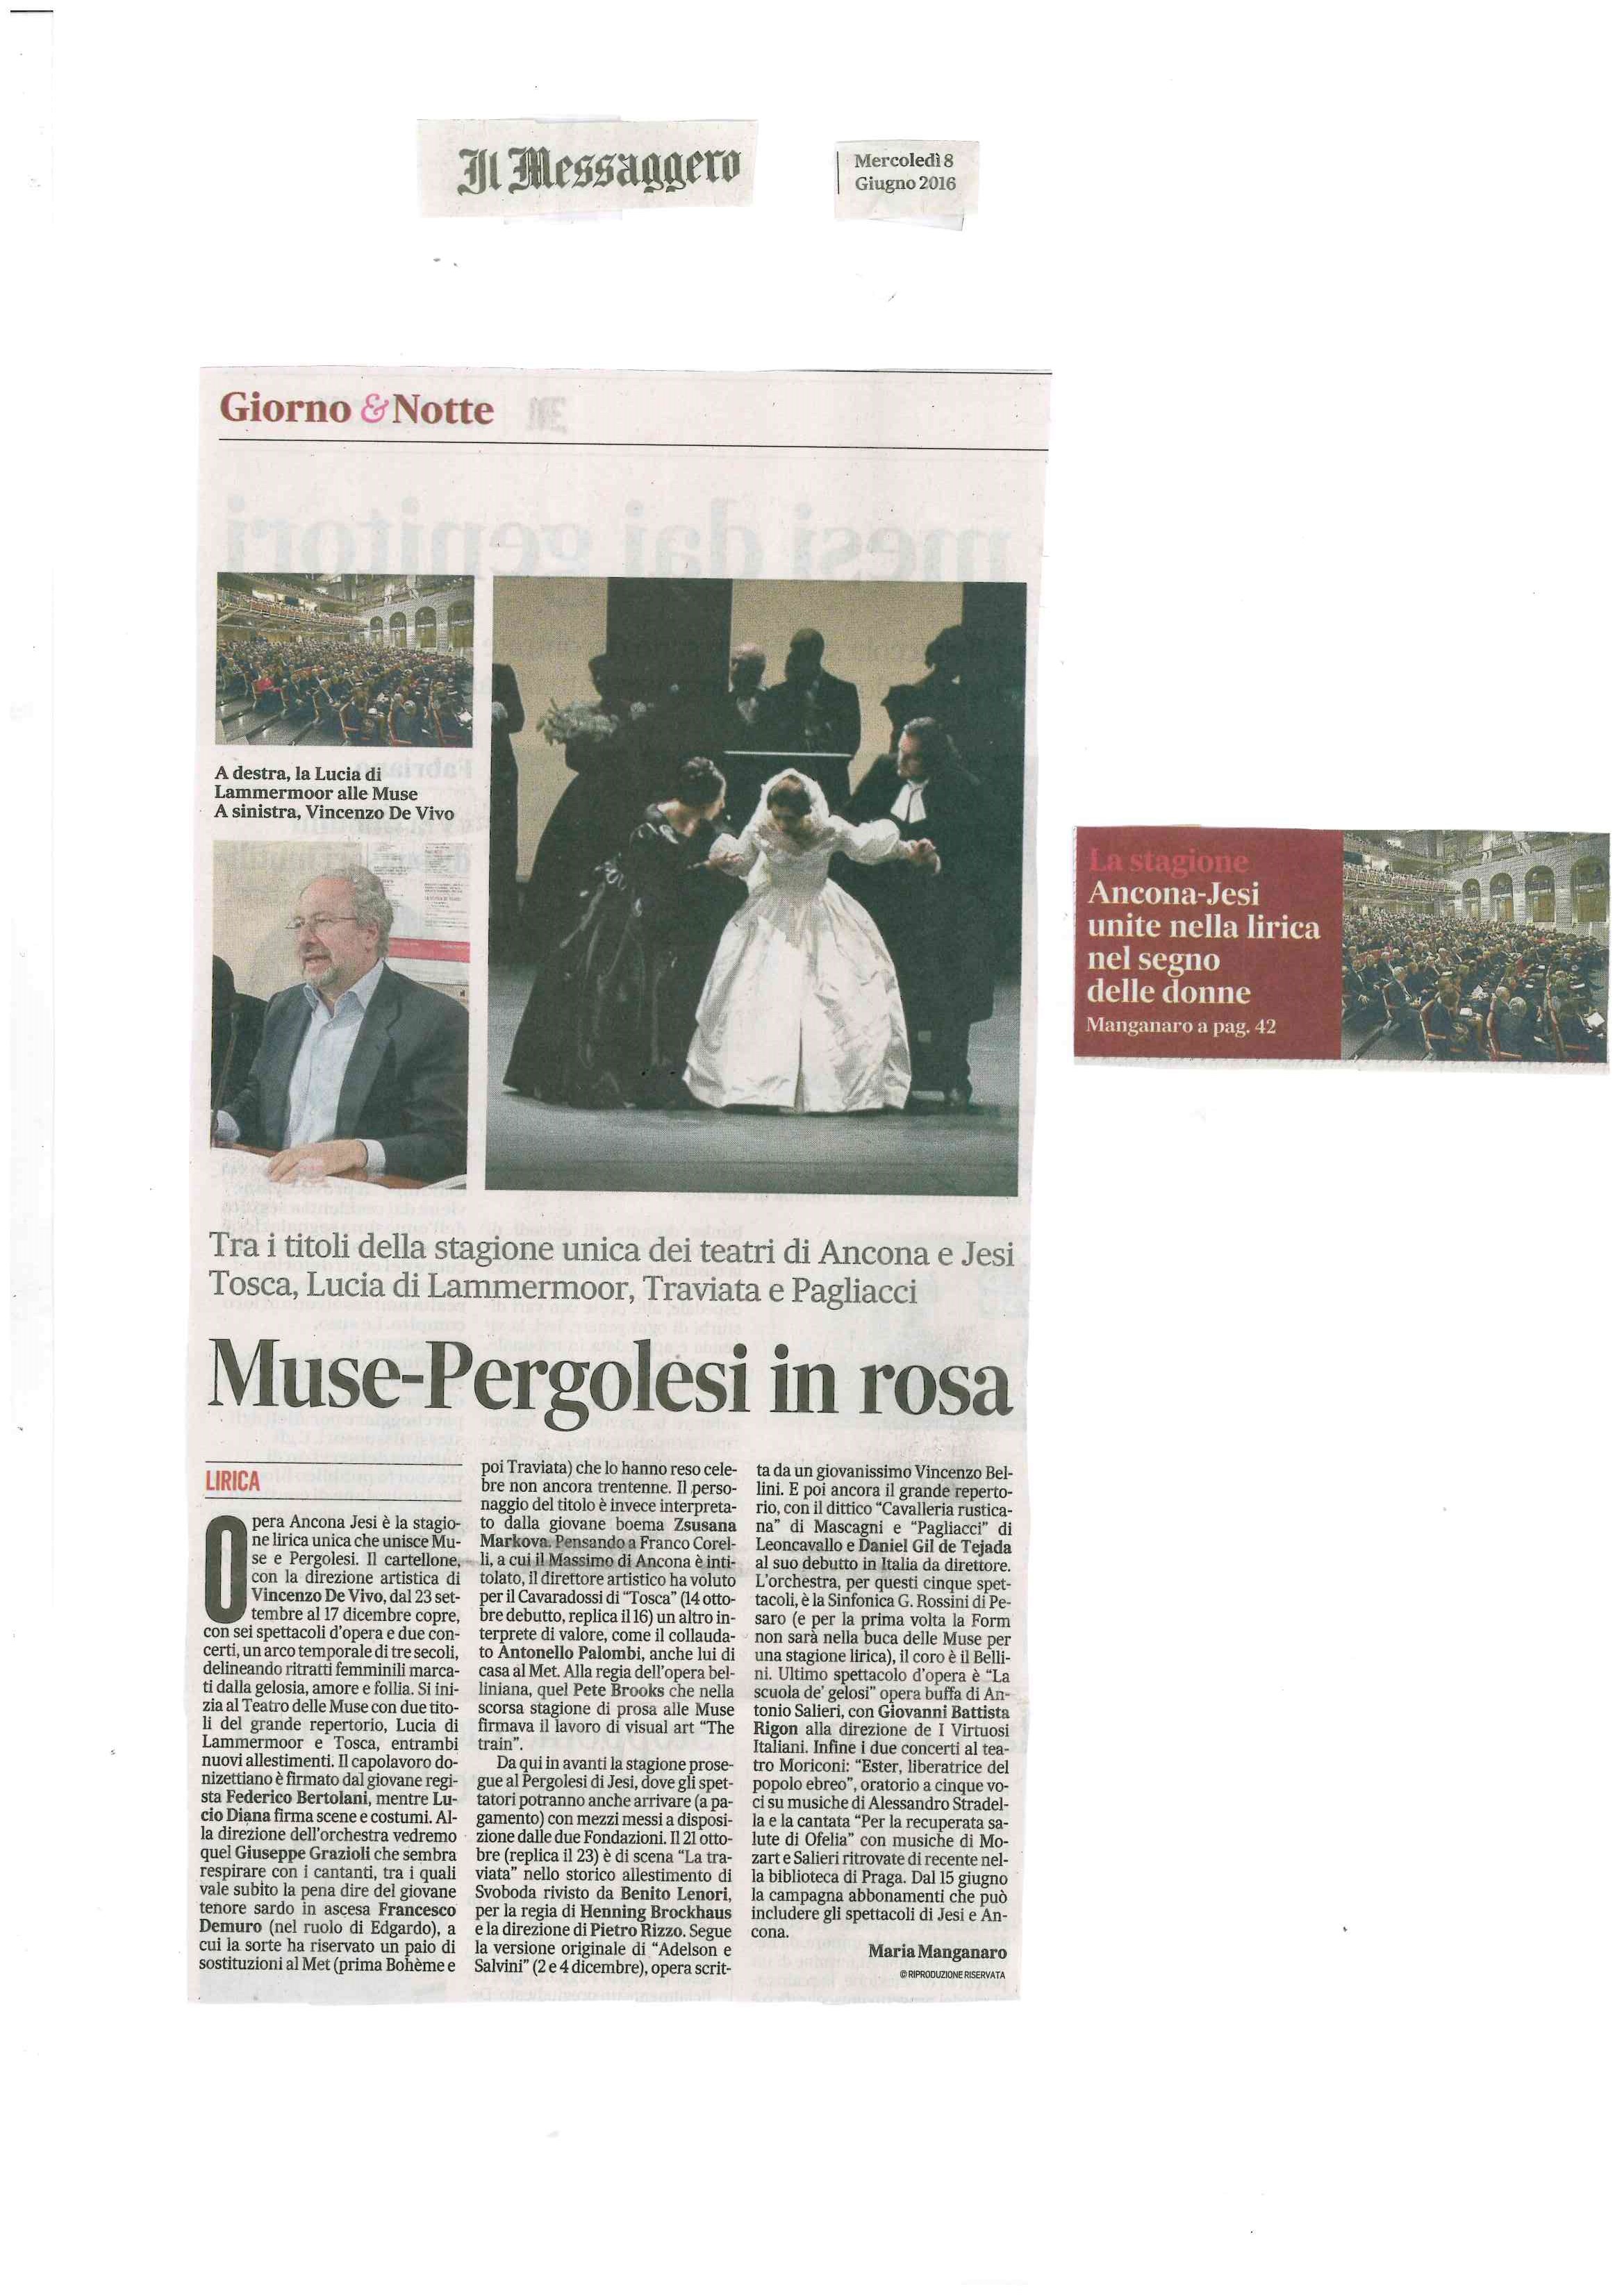 2016_06_08_ Muse-Pergolesi in rosa_ il messaggero